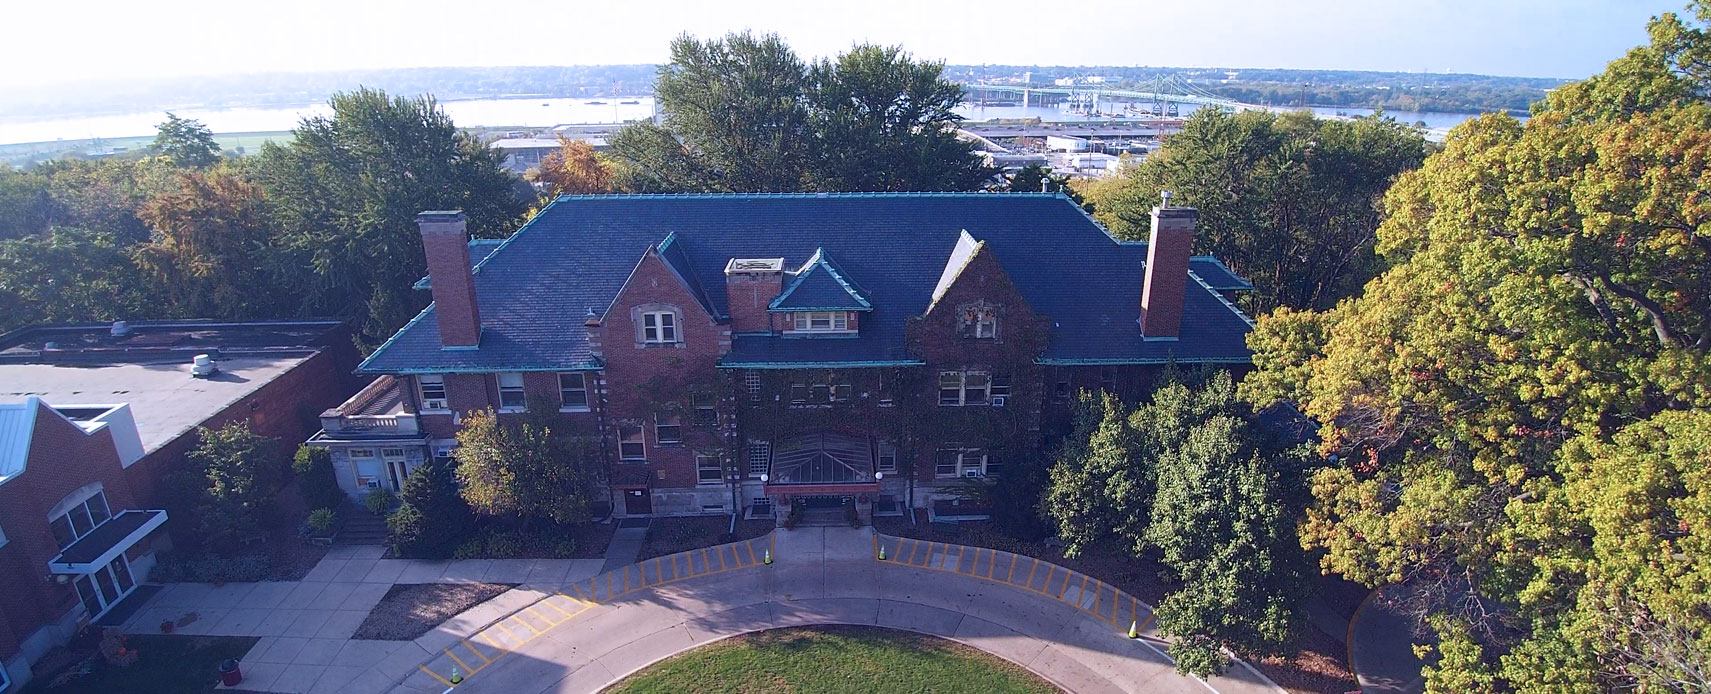 Photo of the Bettendorf Mansion at Rivermont Collegiate from above.